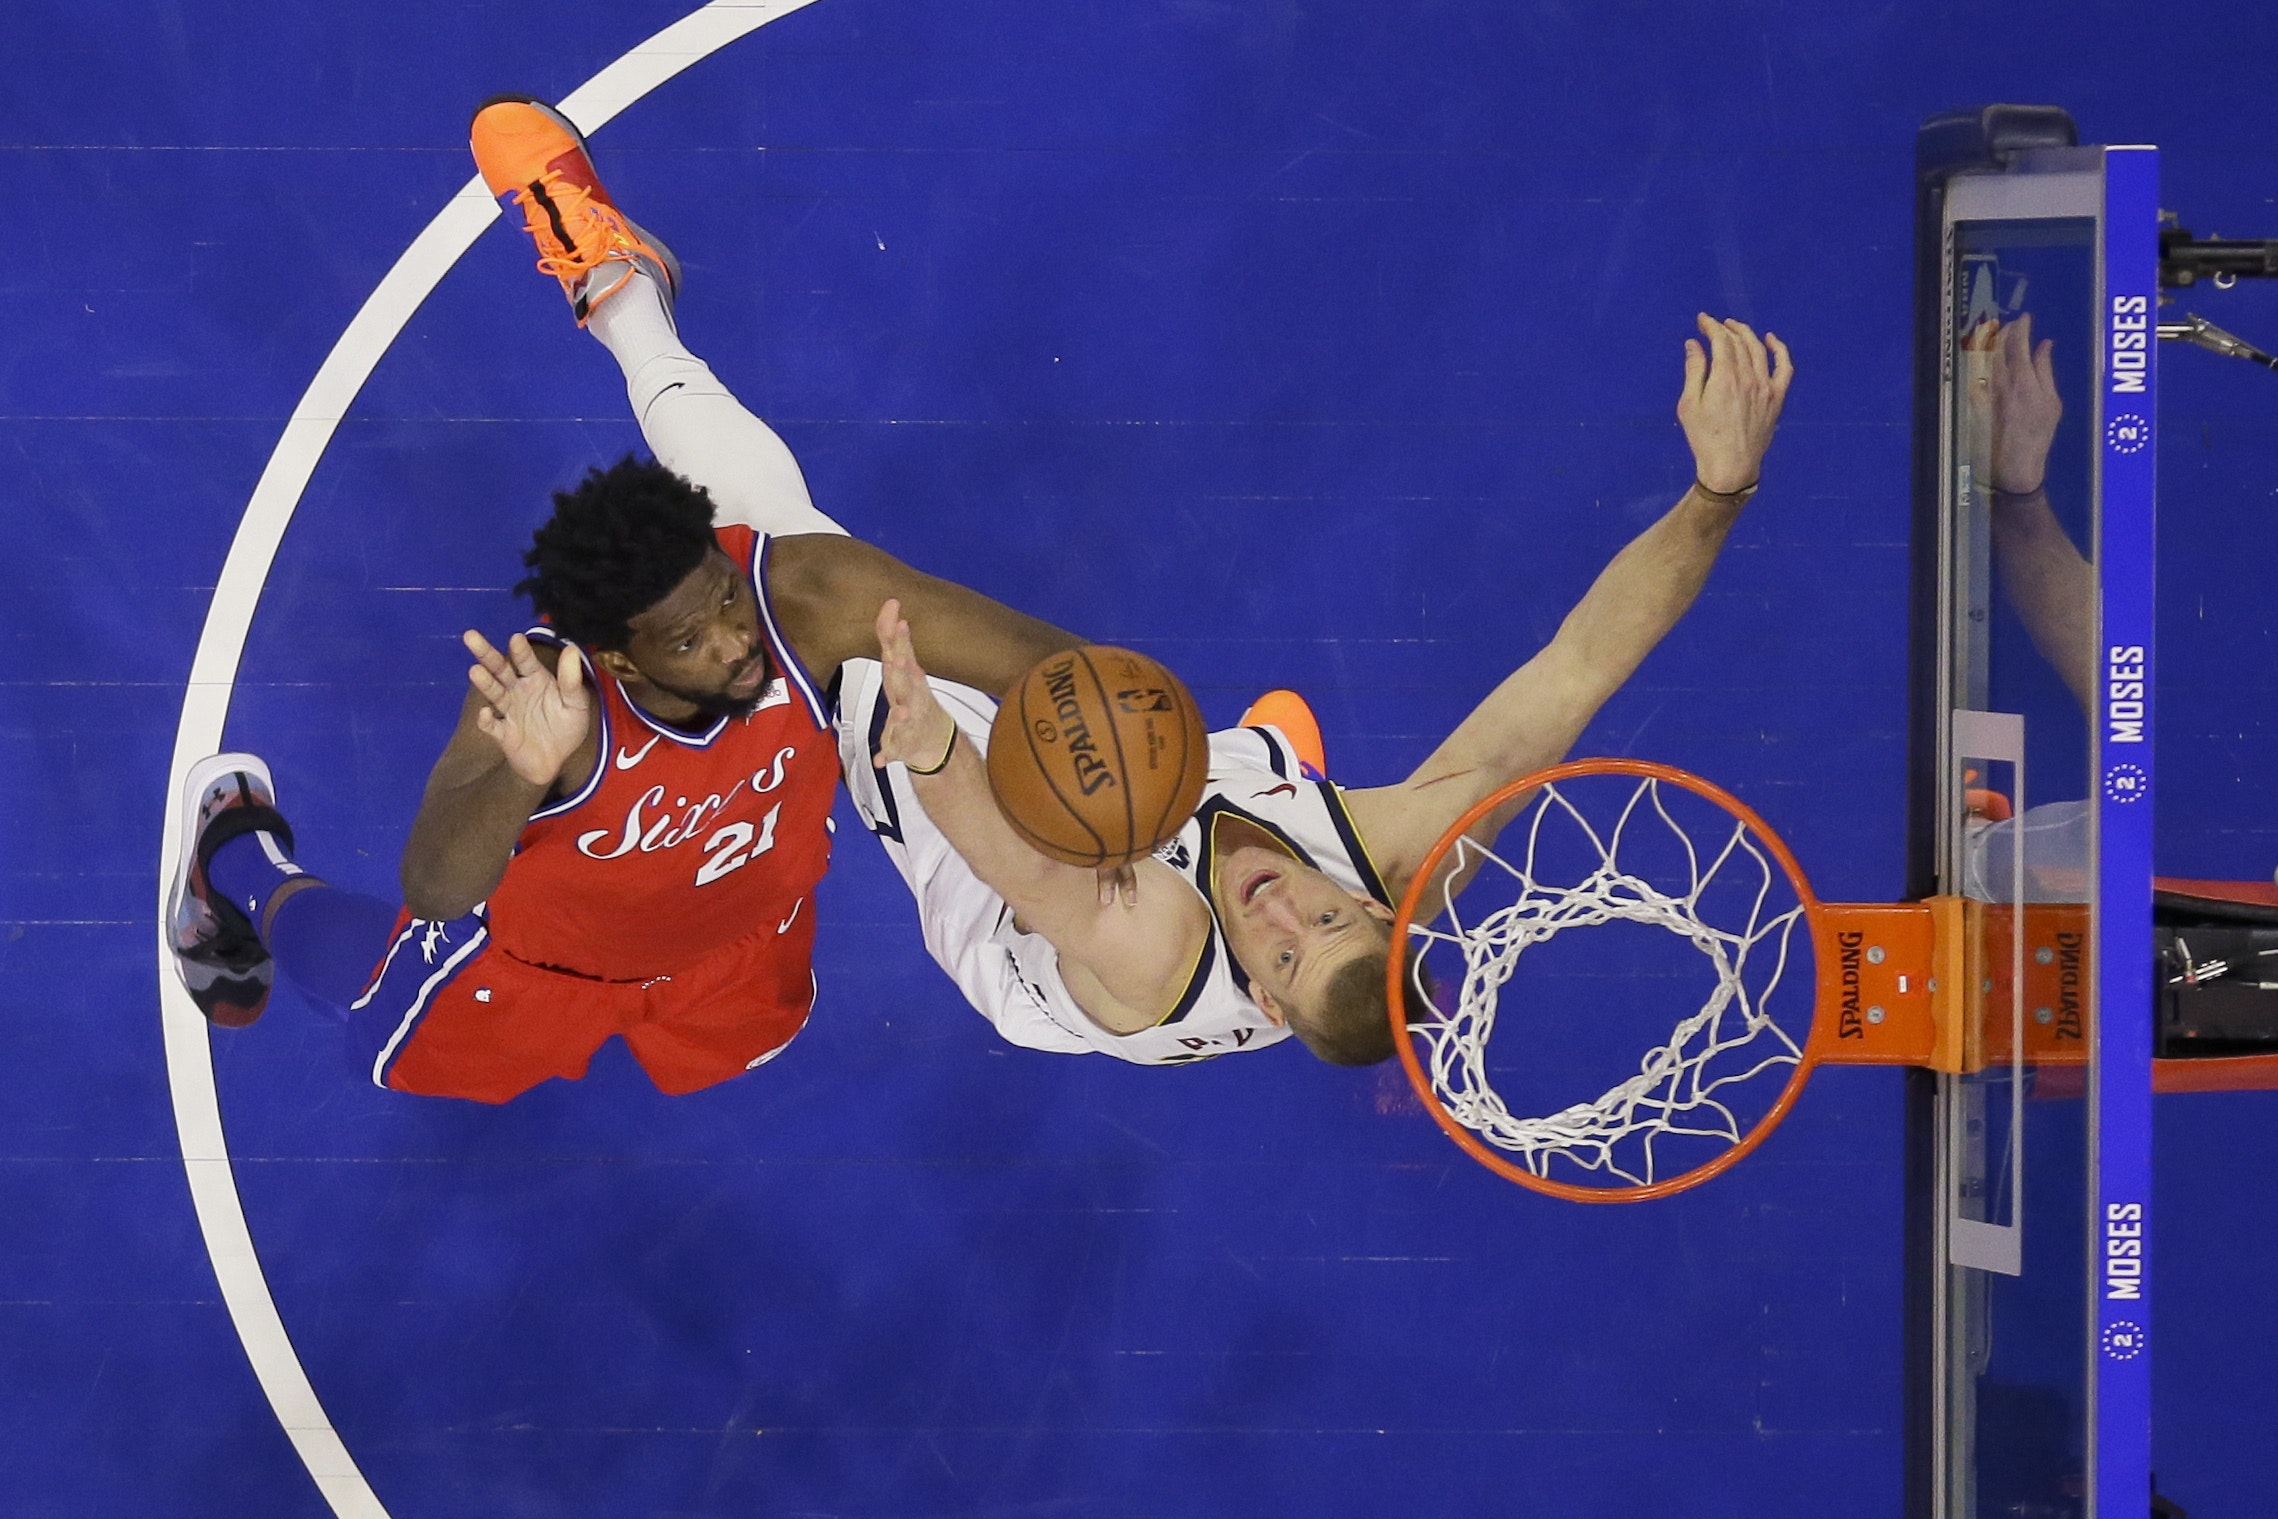 Joel Embiid, left, had a fine night for the 76ers